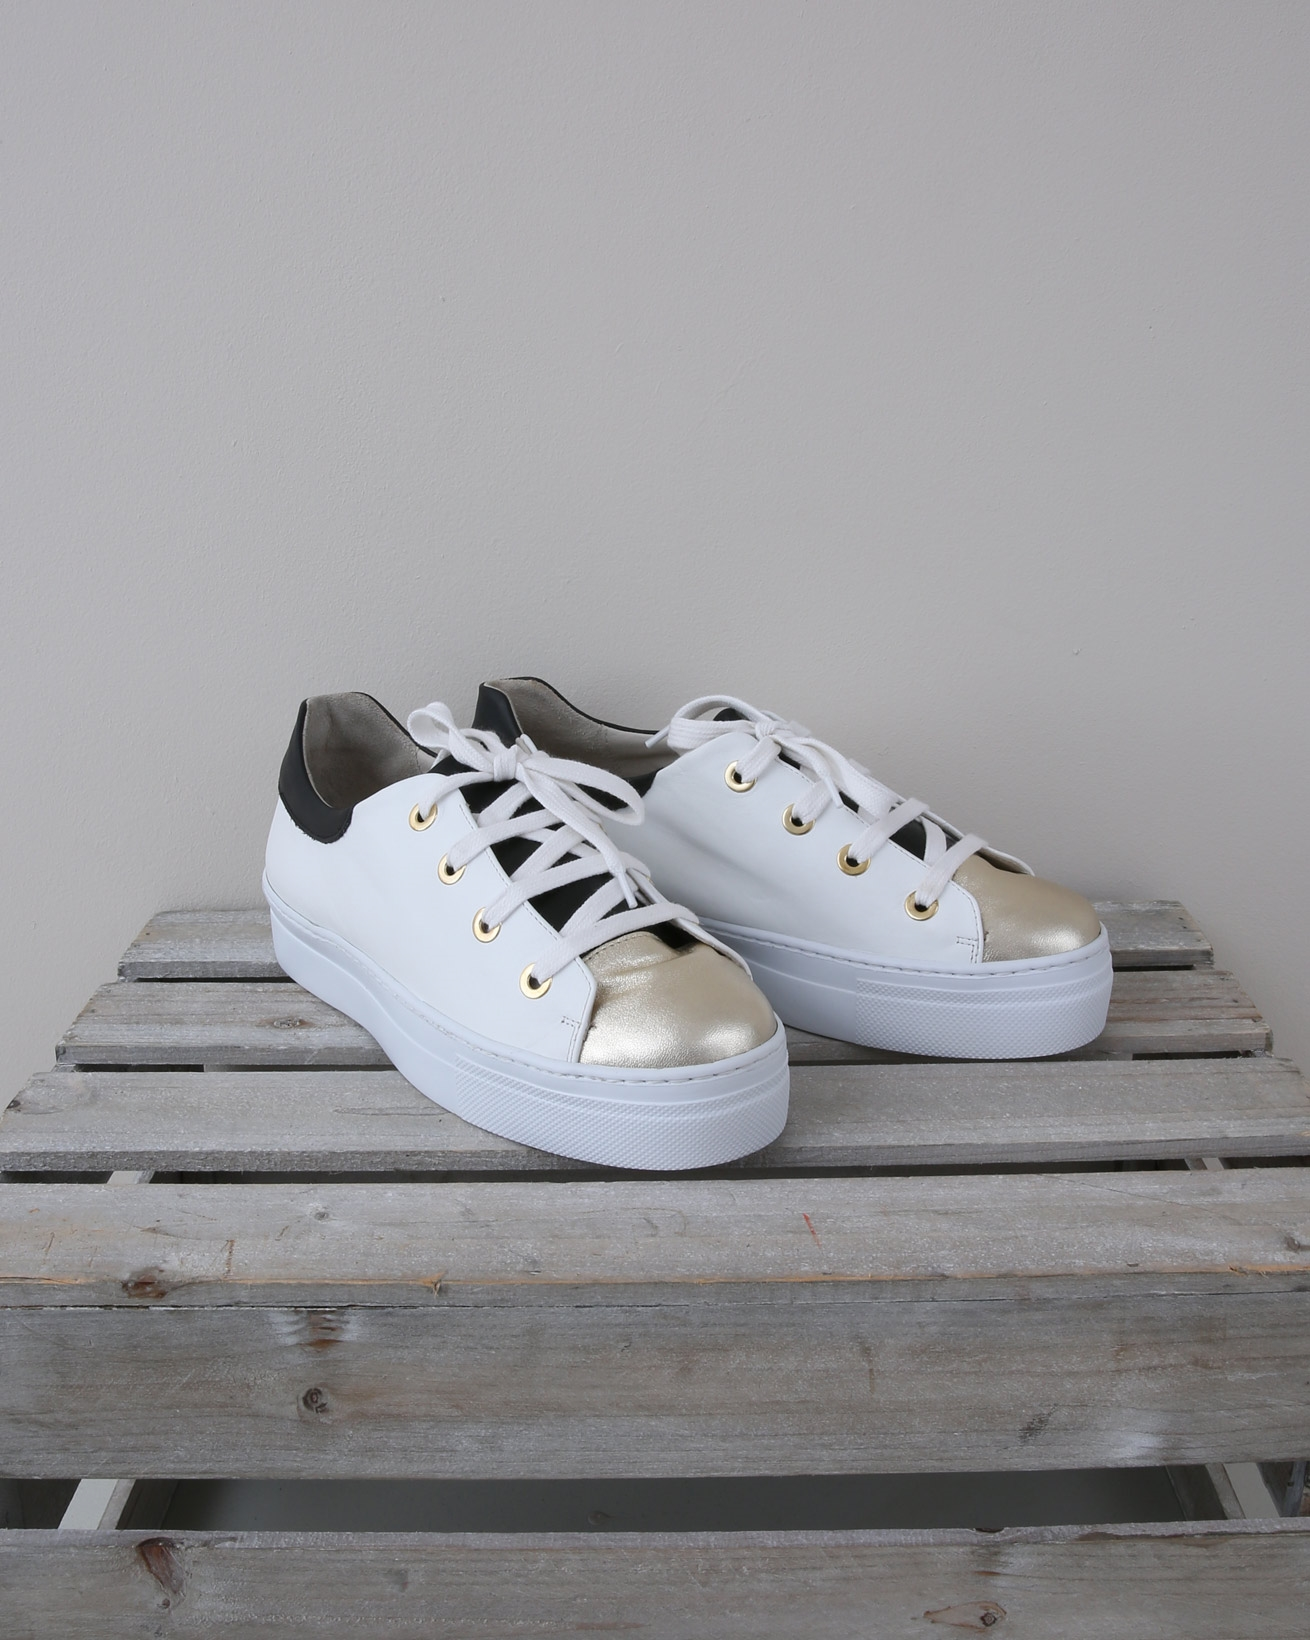 Leather Platform Sole Trainer - Size 39 - White, Navy, Gold - 1383